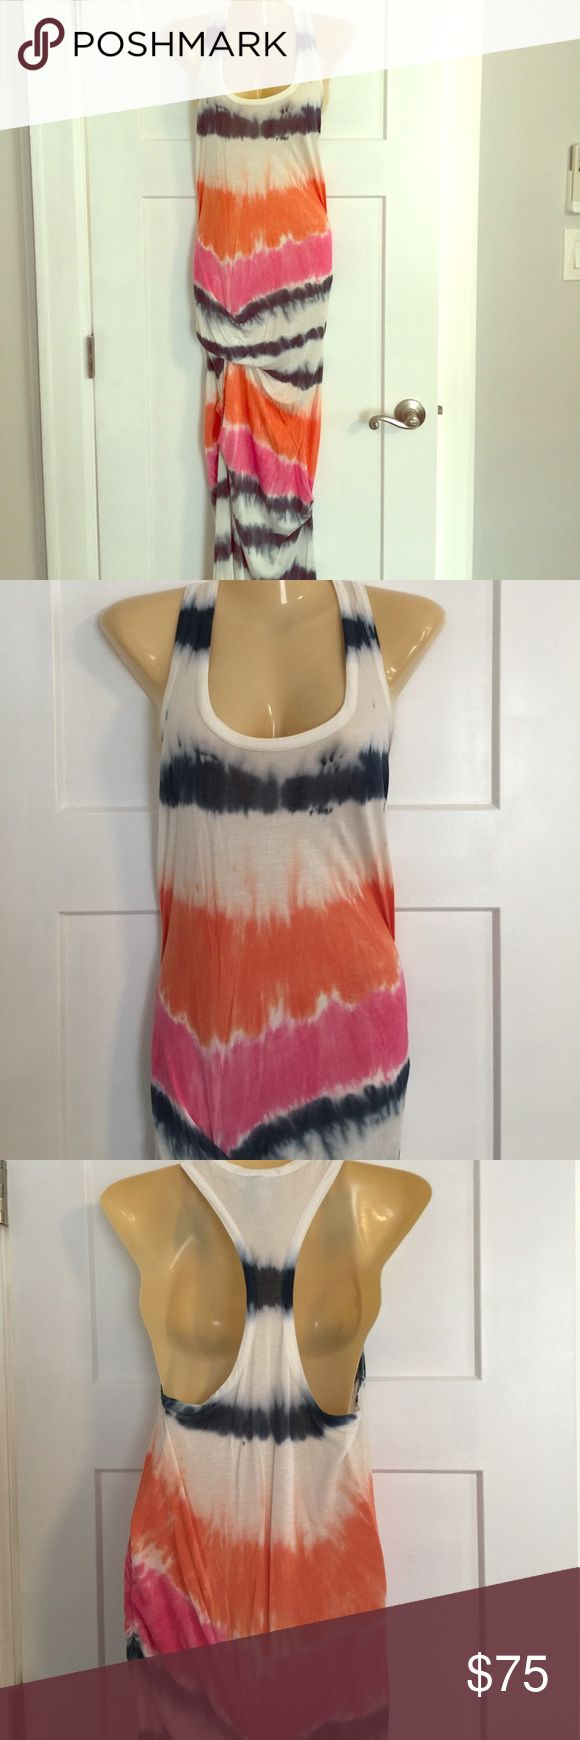 Maxi racerback dress Tie dye dress with white, blue, orange and pink. Very light weight and comfy for summer. Very long- I had a tailor use ruching on the sides to make it shorter, but it is still extremely long so you may need to hem. Size small but I am medium and fits fine. Perfect condition Young Fabulous & Broke Dresses Maxi